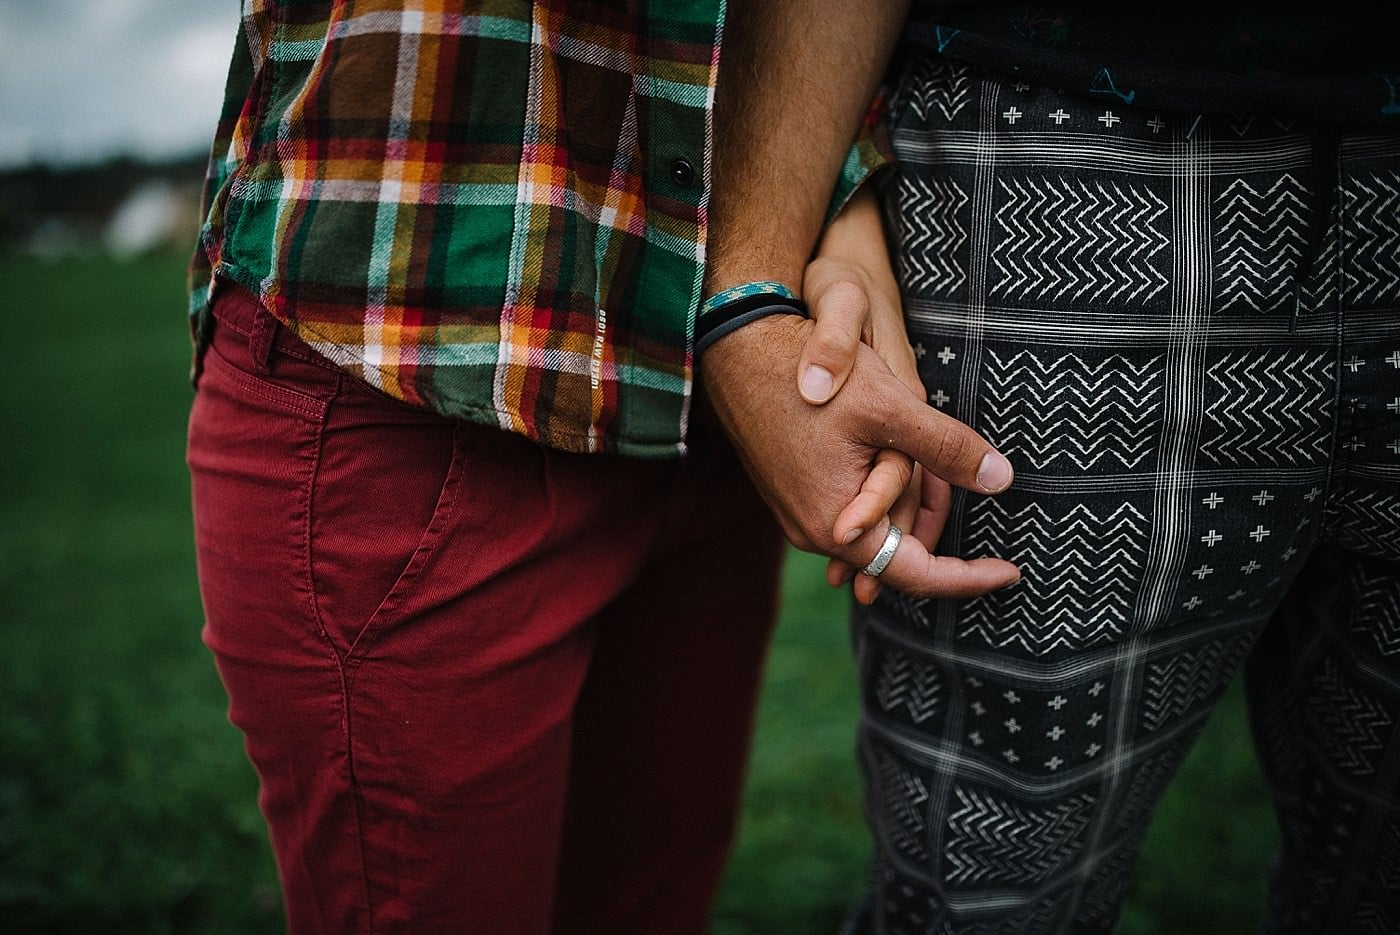 tann-zurich-engagement-photography_0046